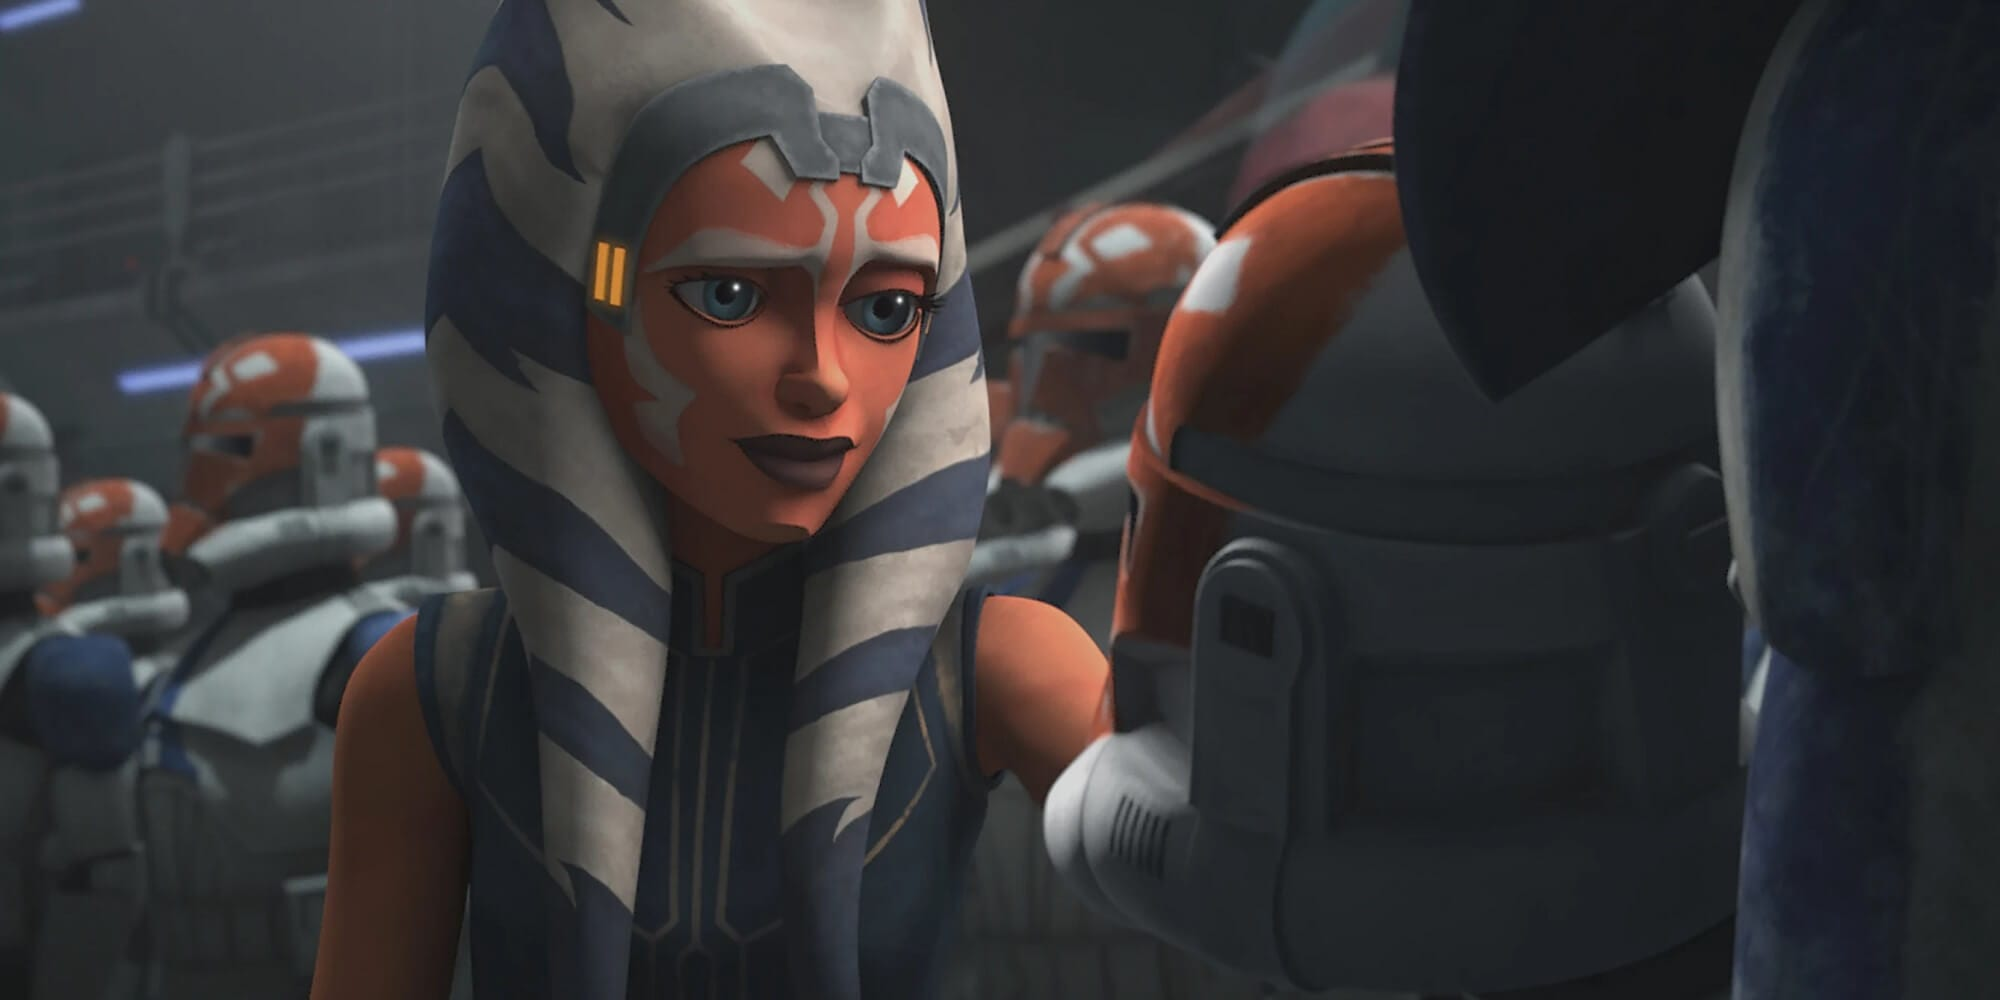 Old friends not forgotten the clone wars siege of mandalore ahsoka and the 332nd